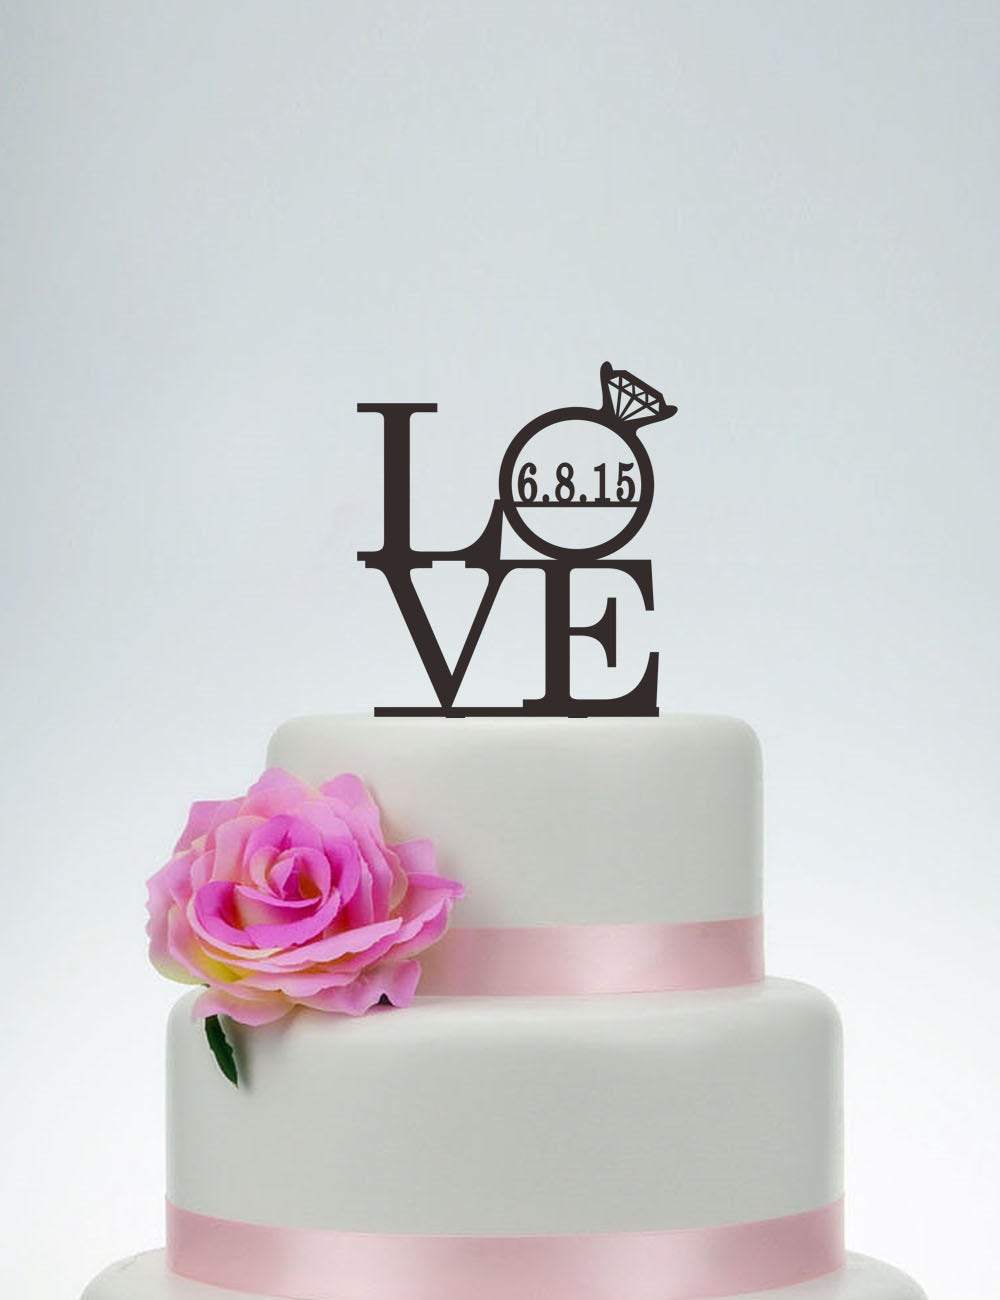 Love Cake Topper, Wedding Topper, Love Topper With Date, Personalized Decoration, Engagement P091